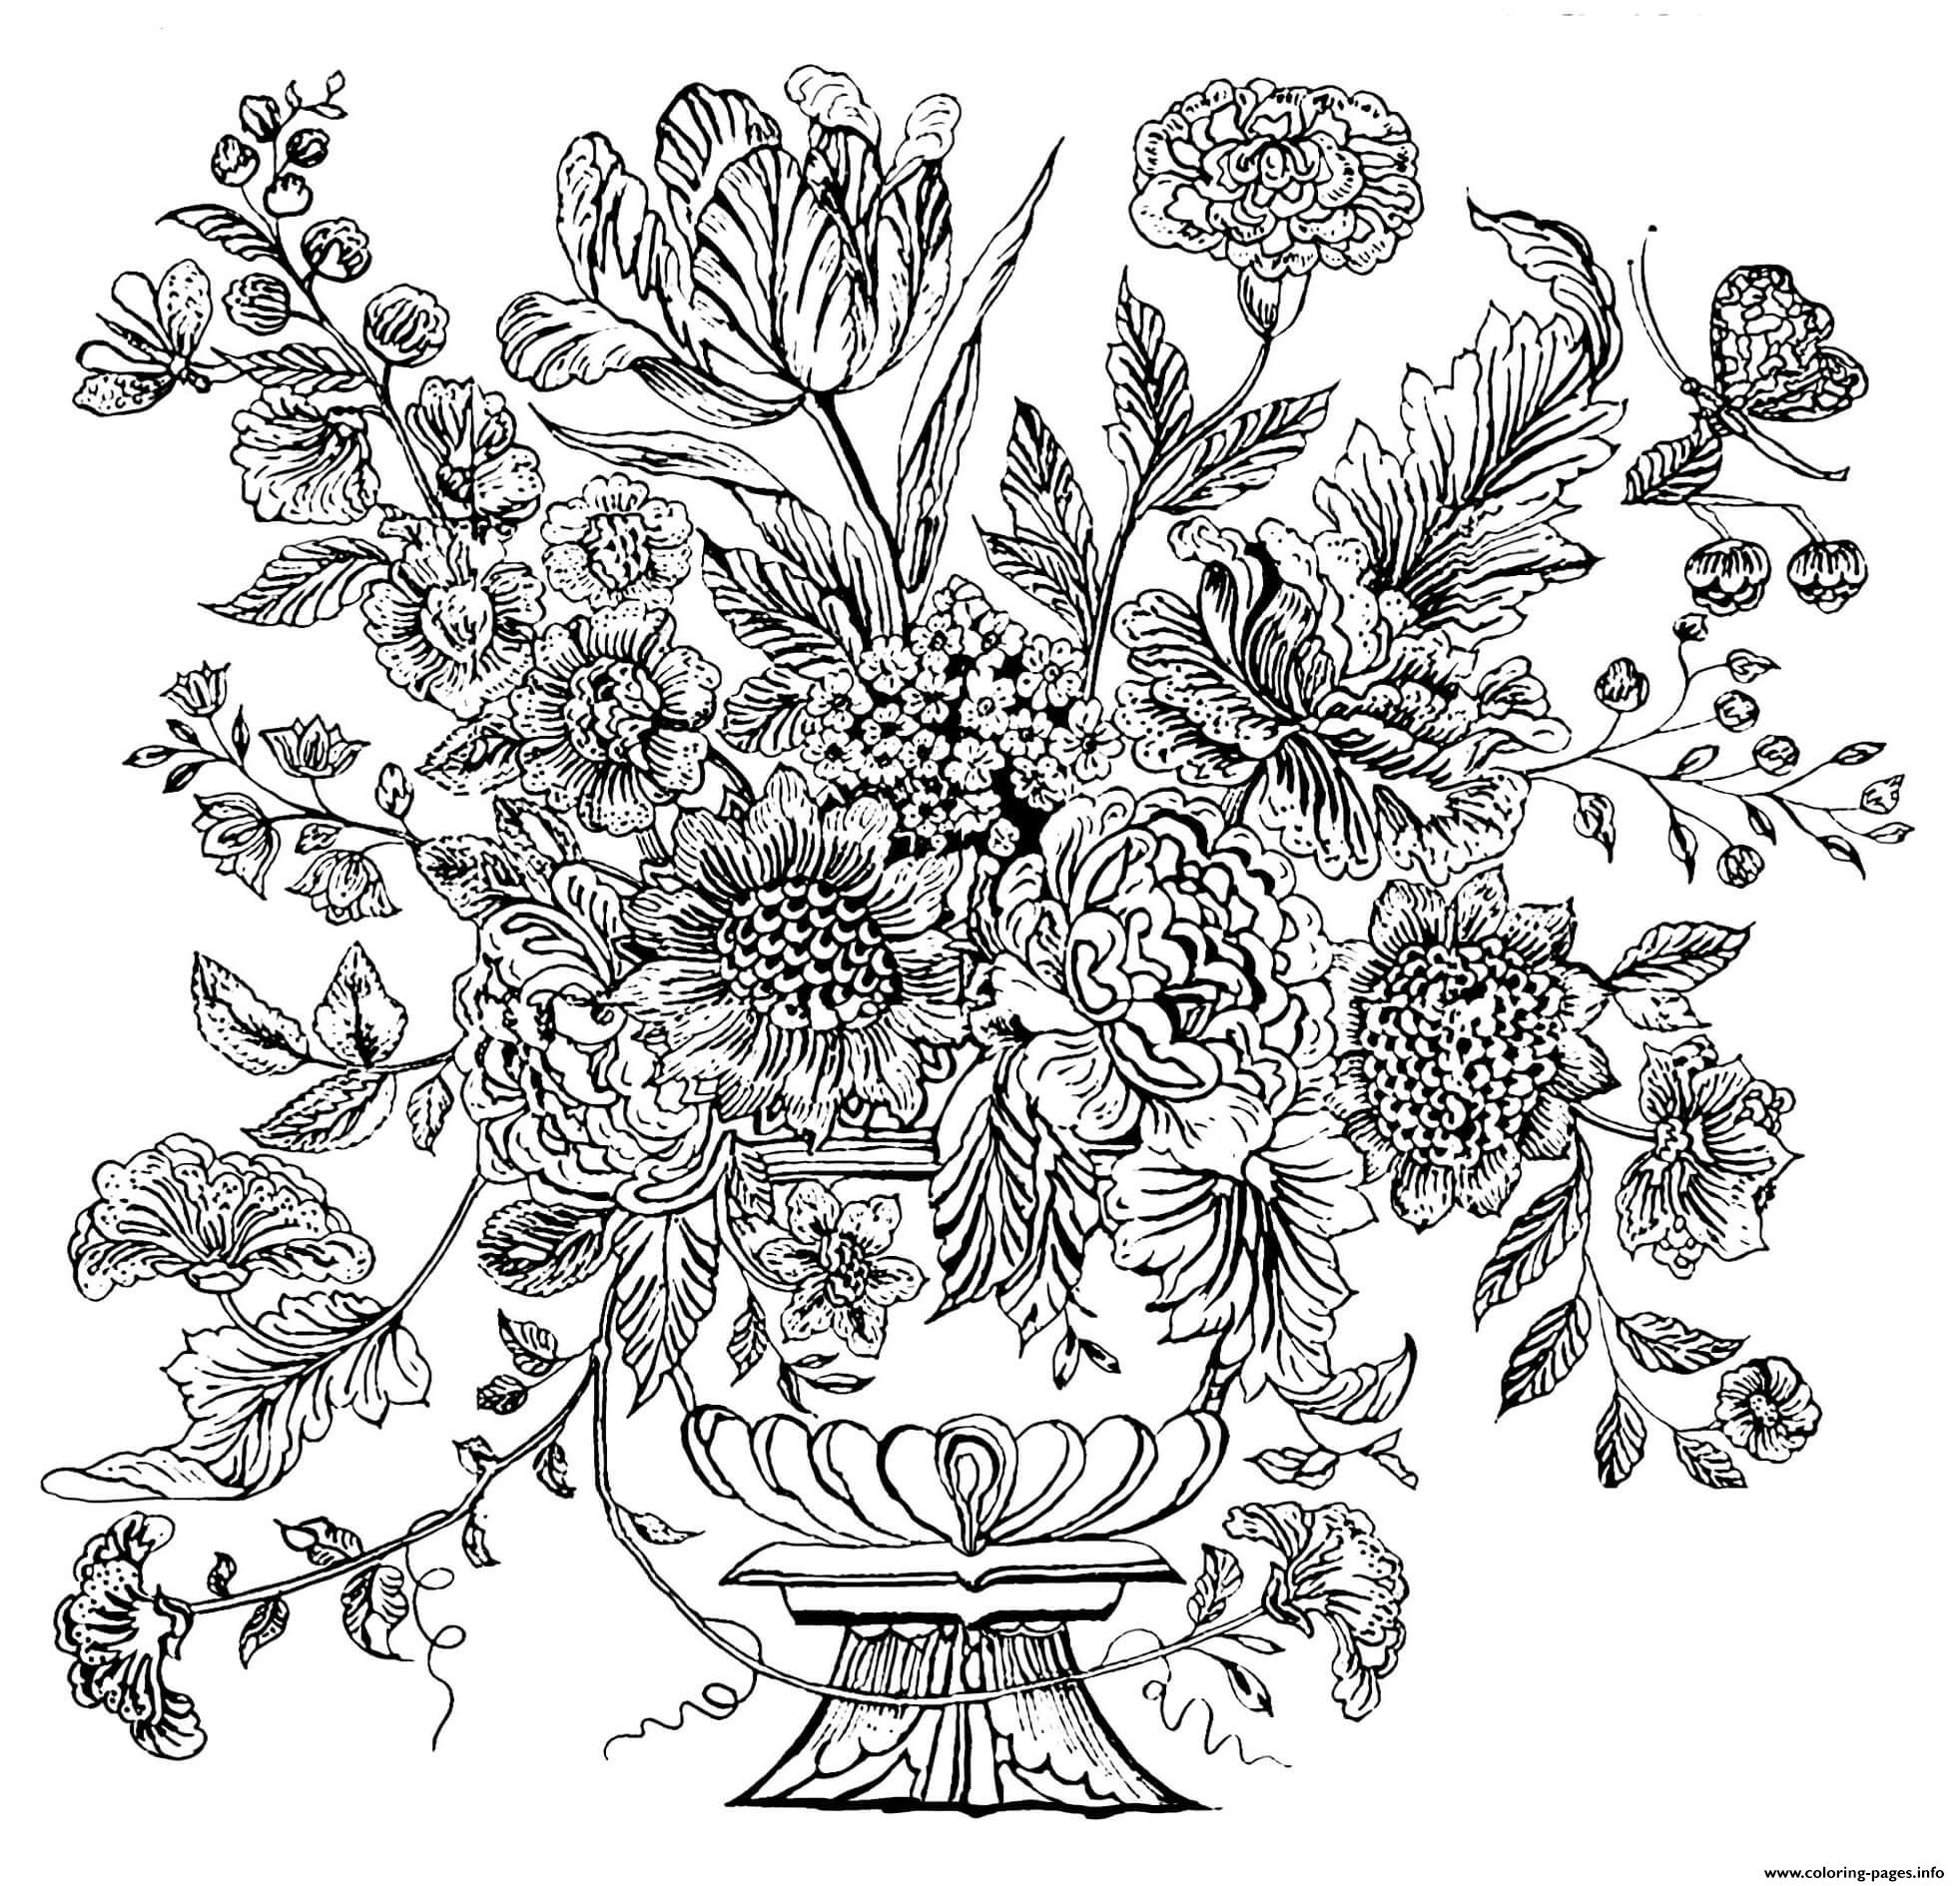 Complex Flower Vase 1740 Mural Tile Coloring Pages Printable